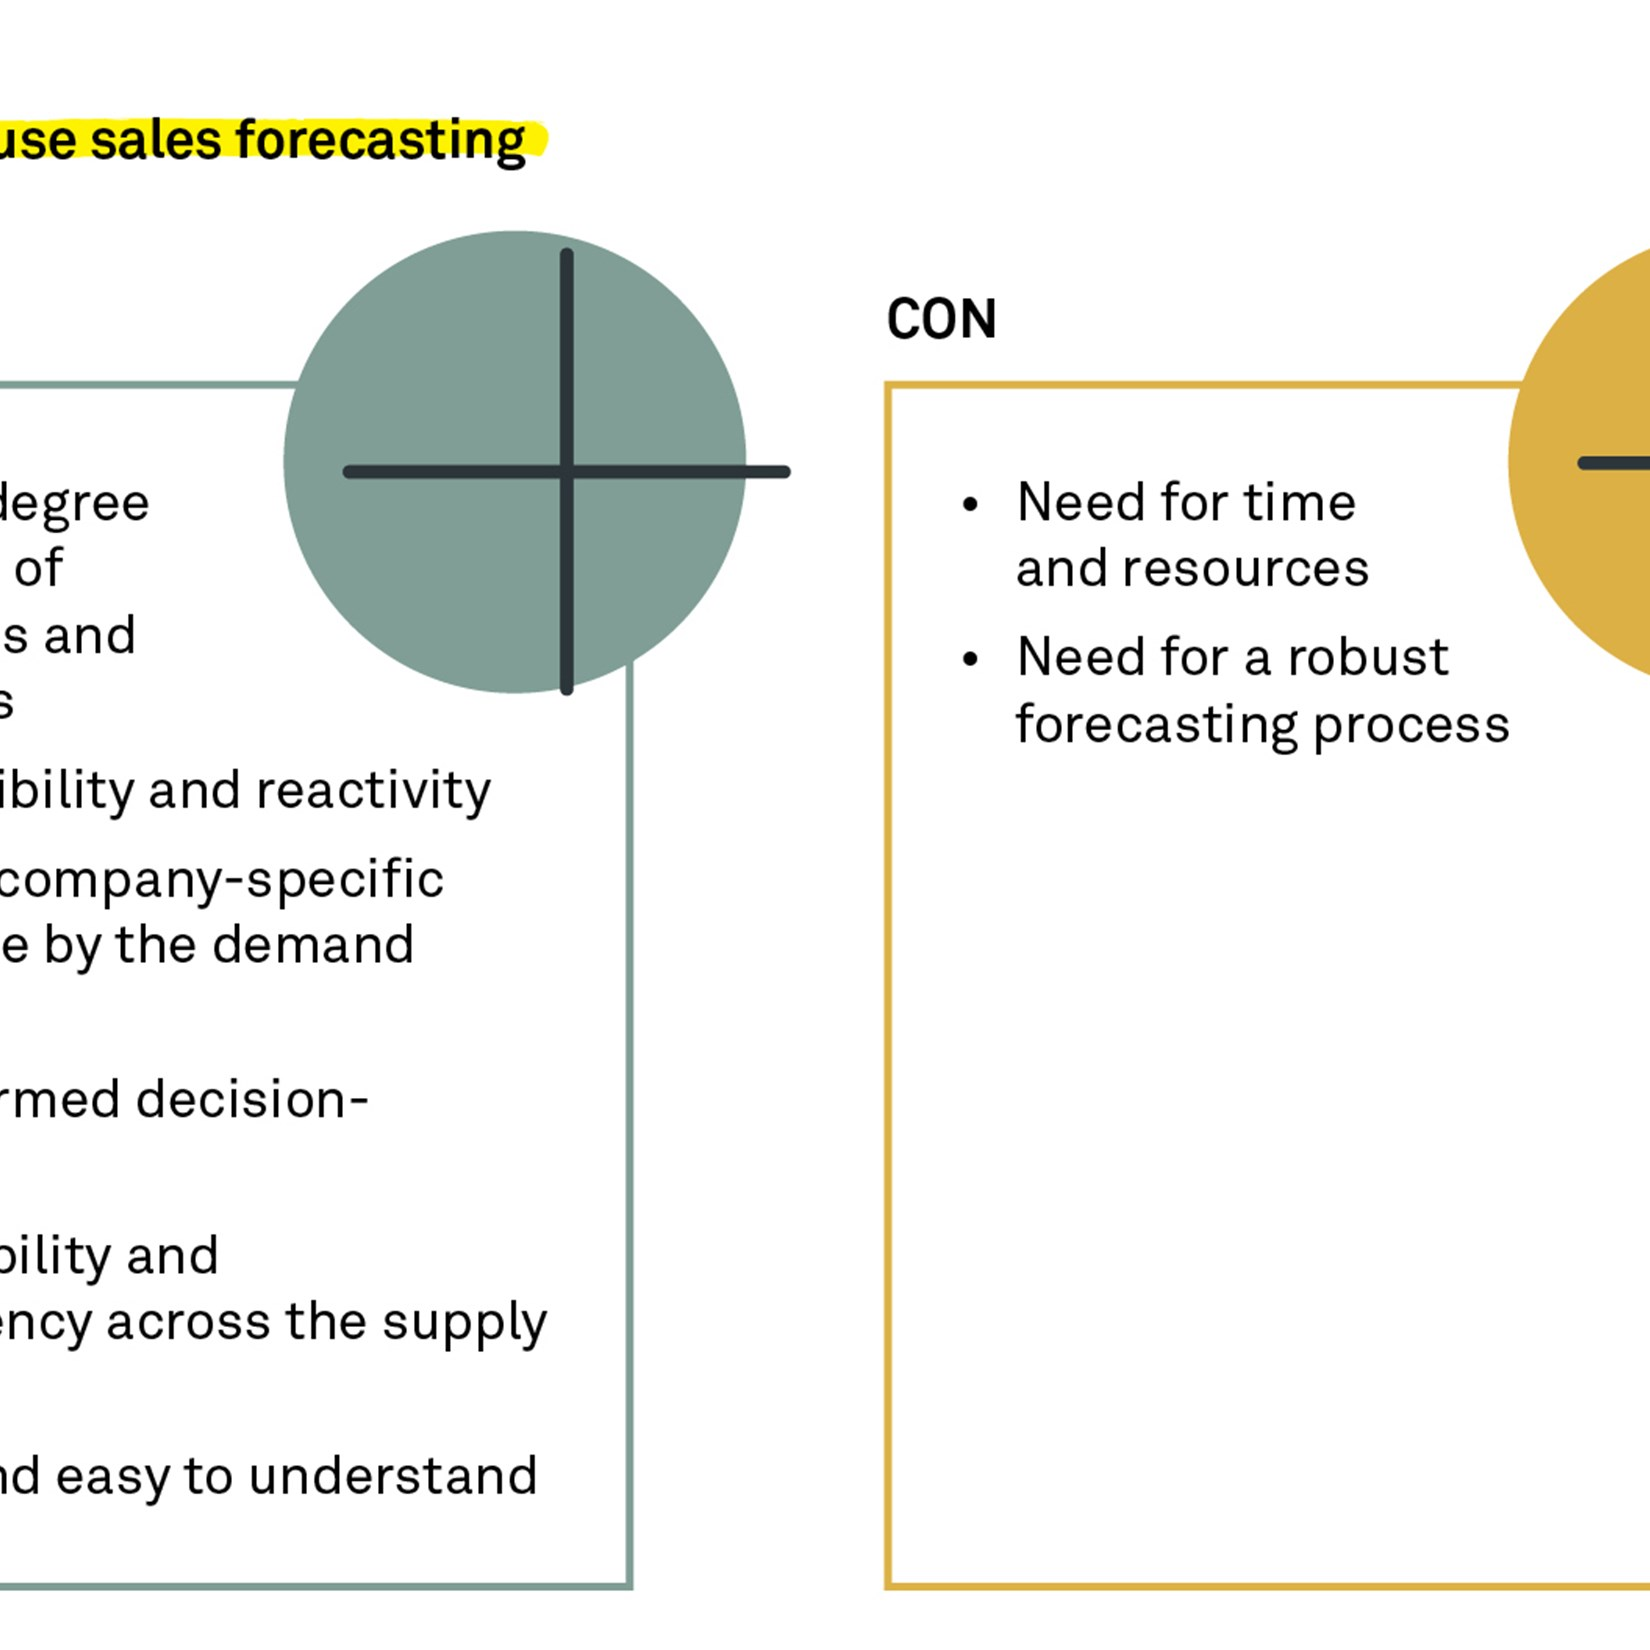 Simple forecasting brings robust accuracy and control to your forecasting process